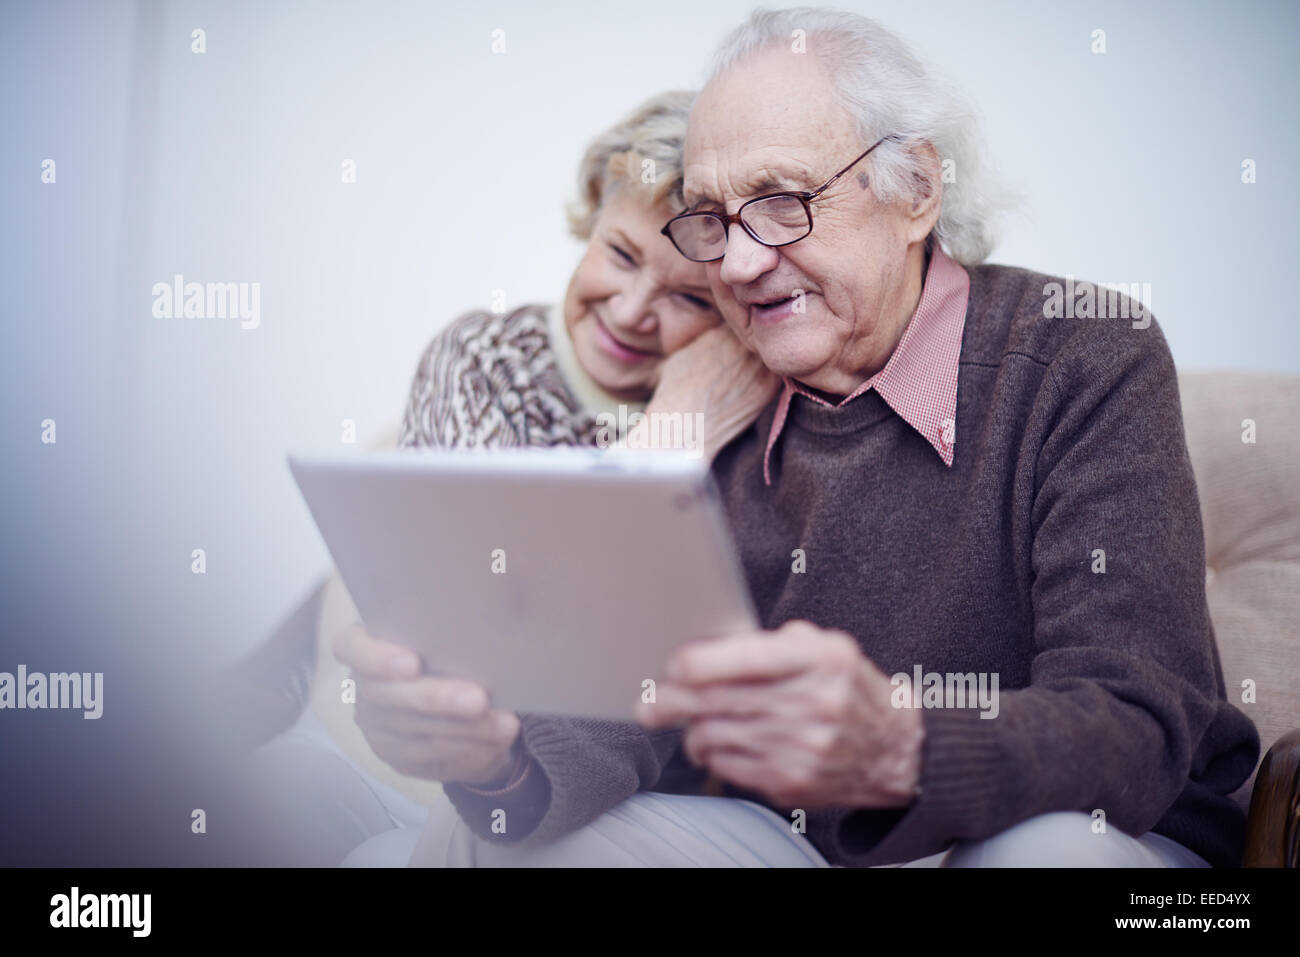 Elderly husband and wife using touchpad - Stock Image